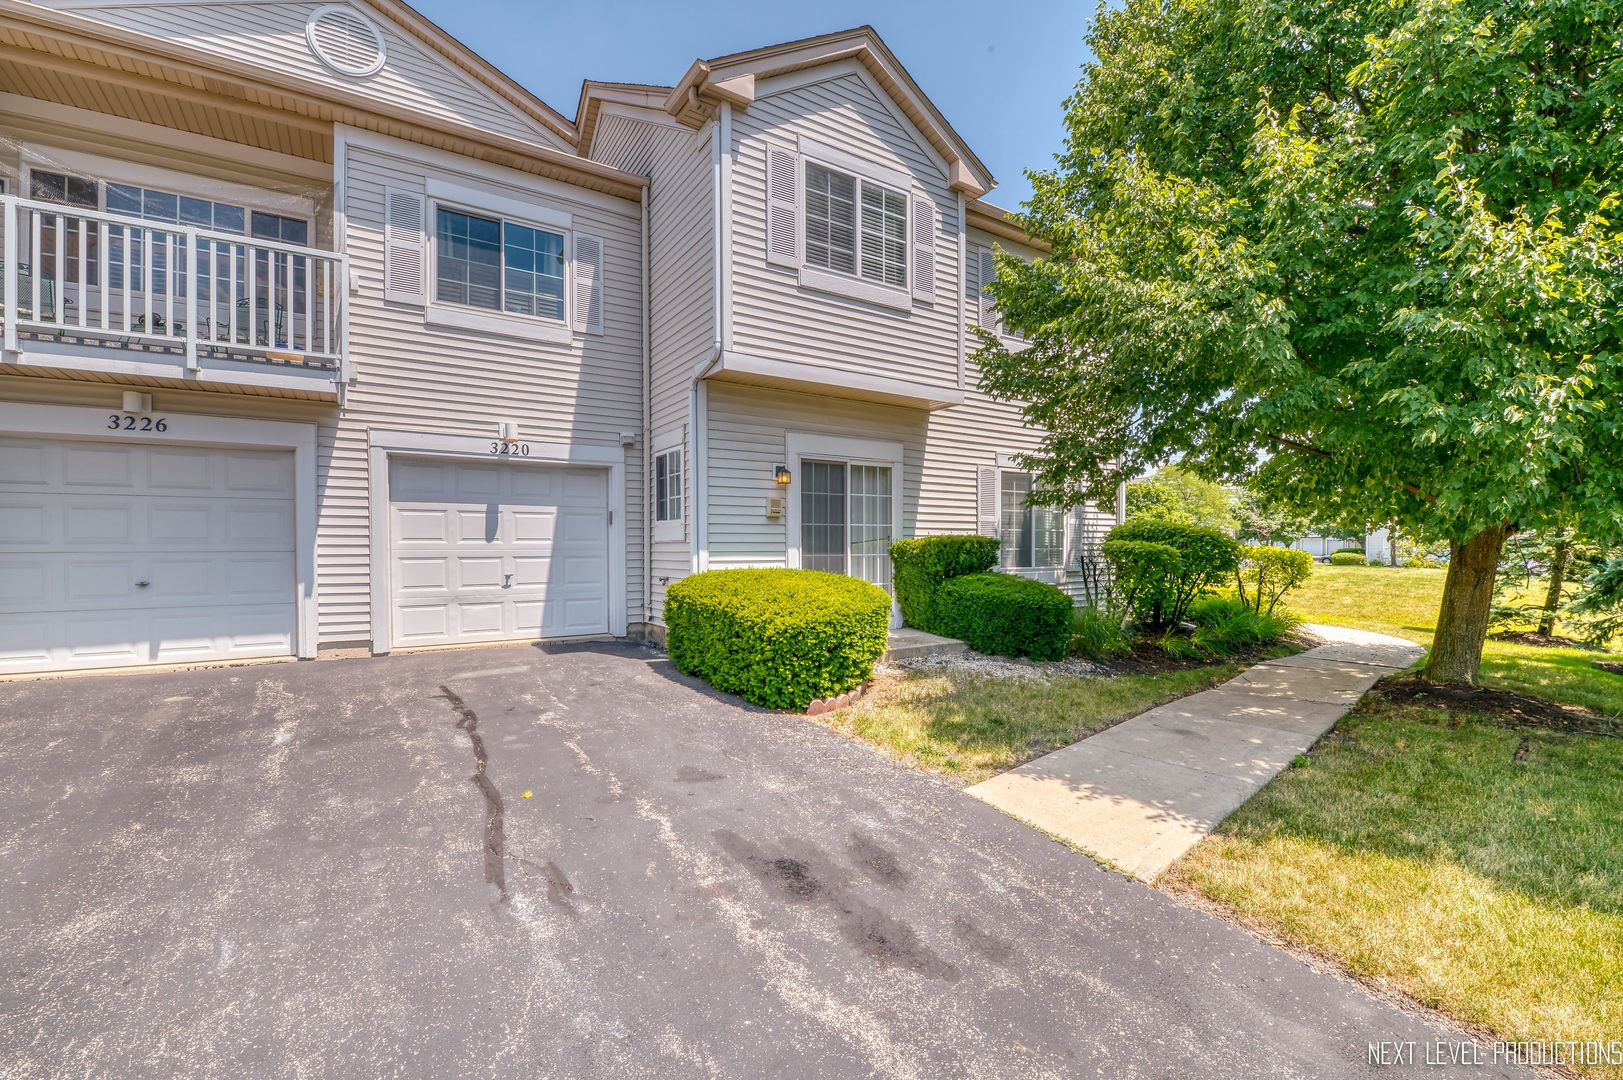 3220 HEATHER GLEN Drive #210, Aurora, IL 60504 - #: 10770217